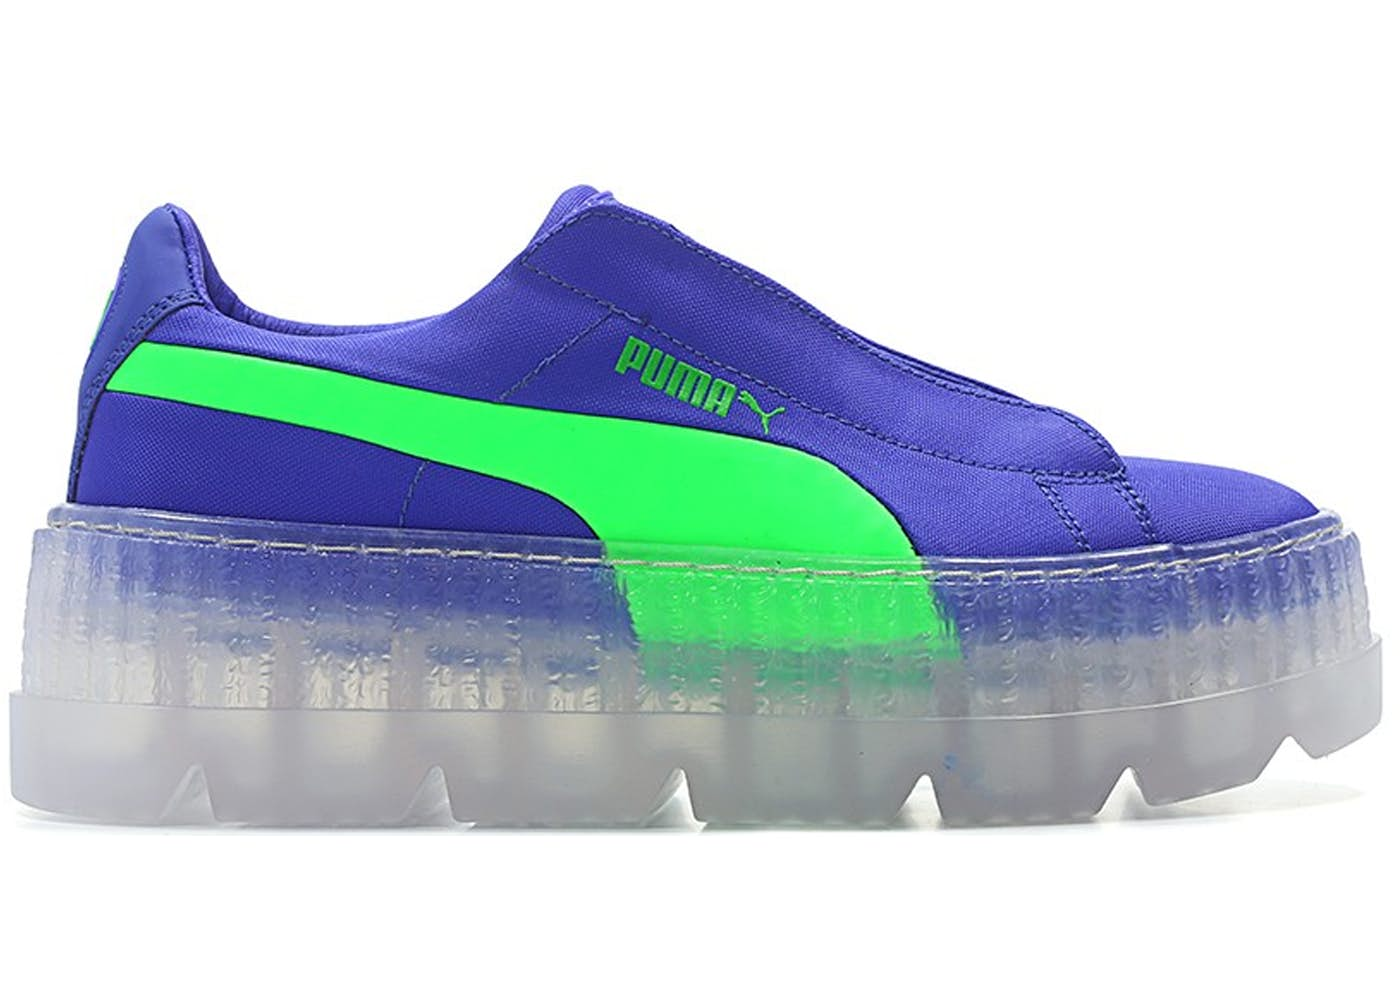 quality design 4f9ae bd248 Puma Cleated Creeper Surf Rihanna Fenty Blue Green (W)